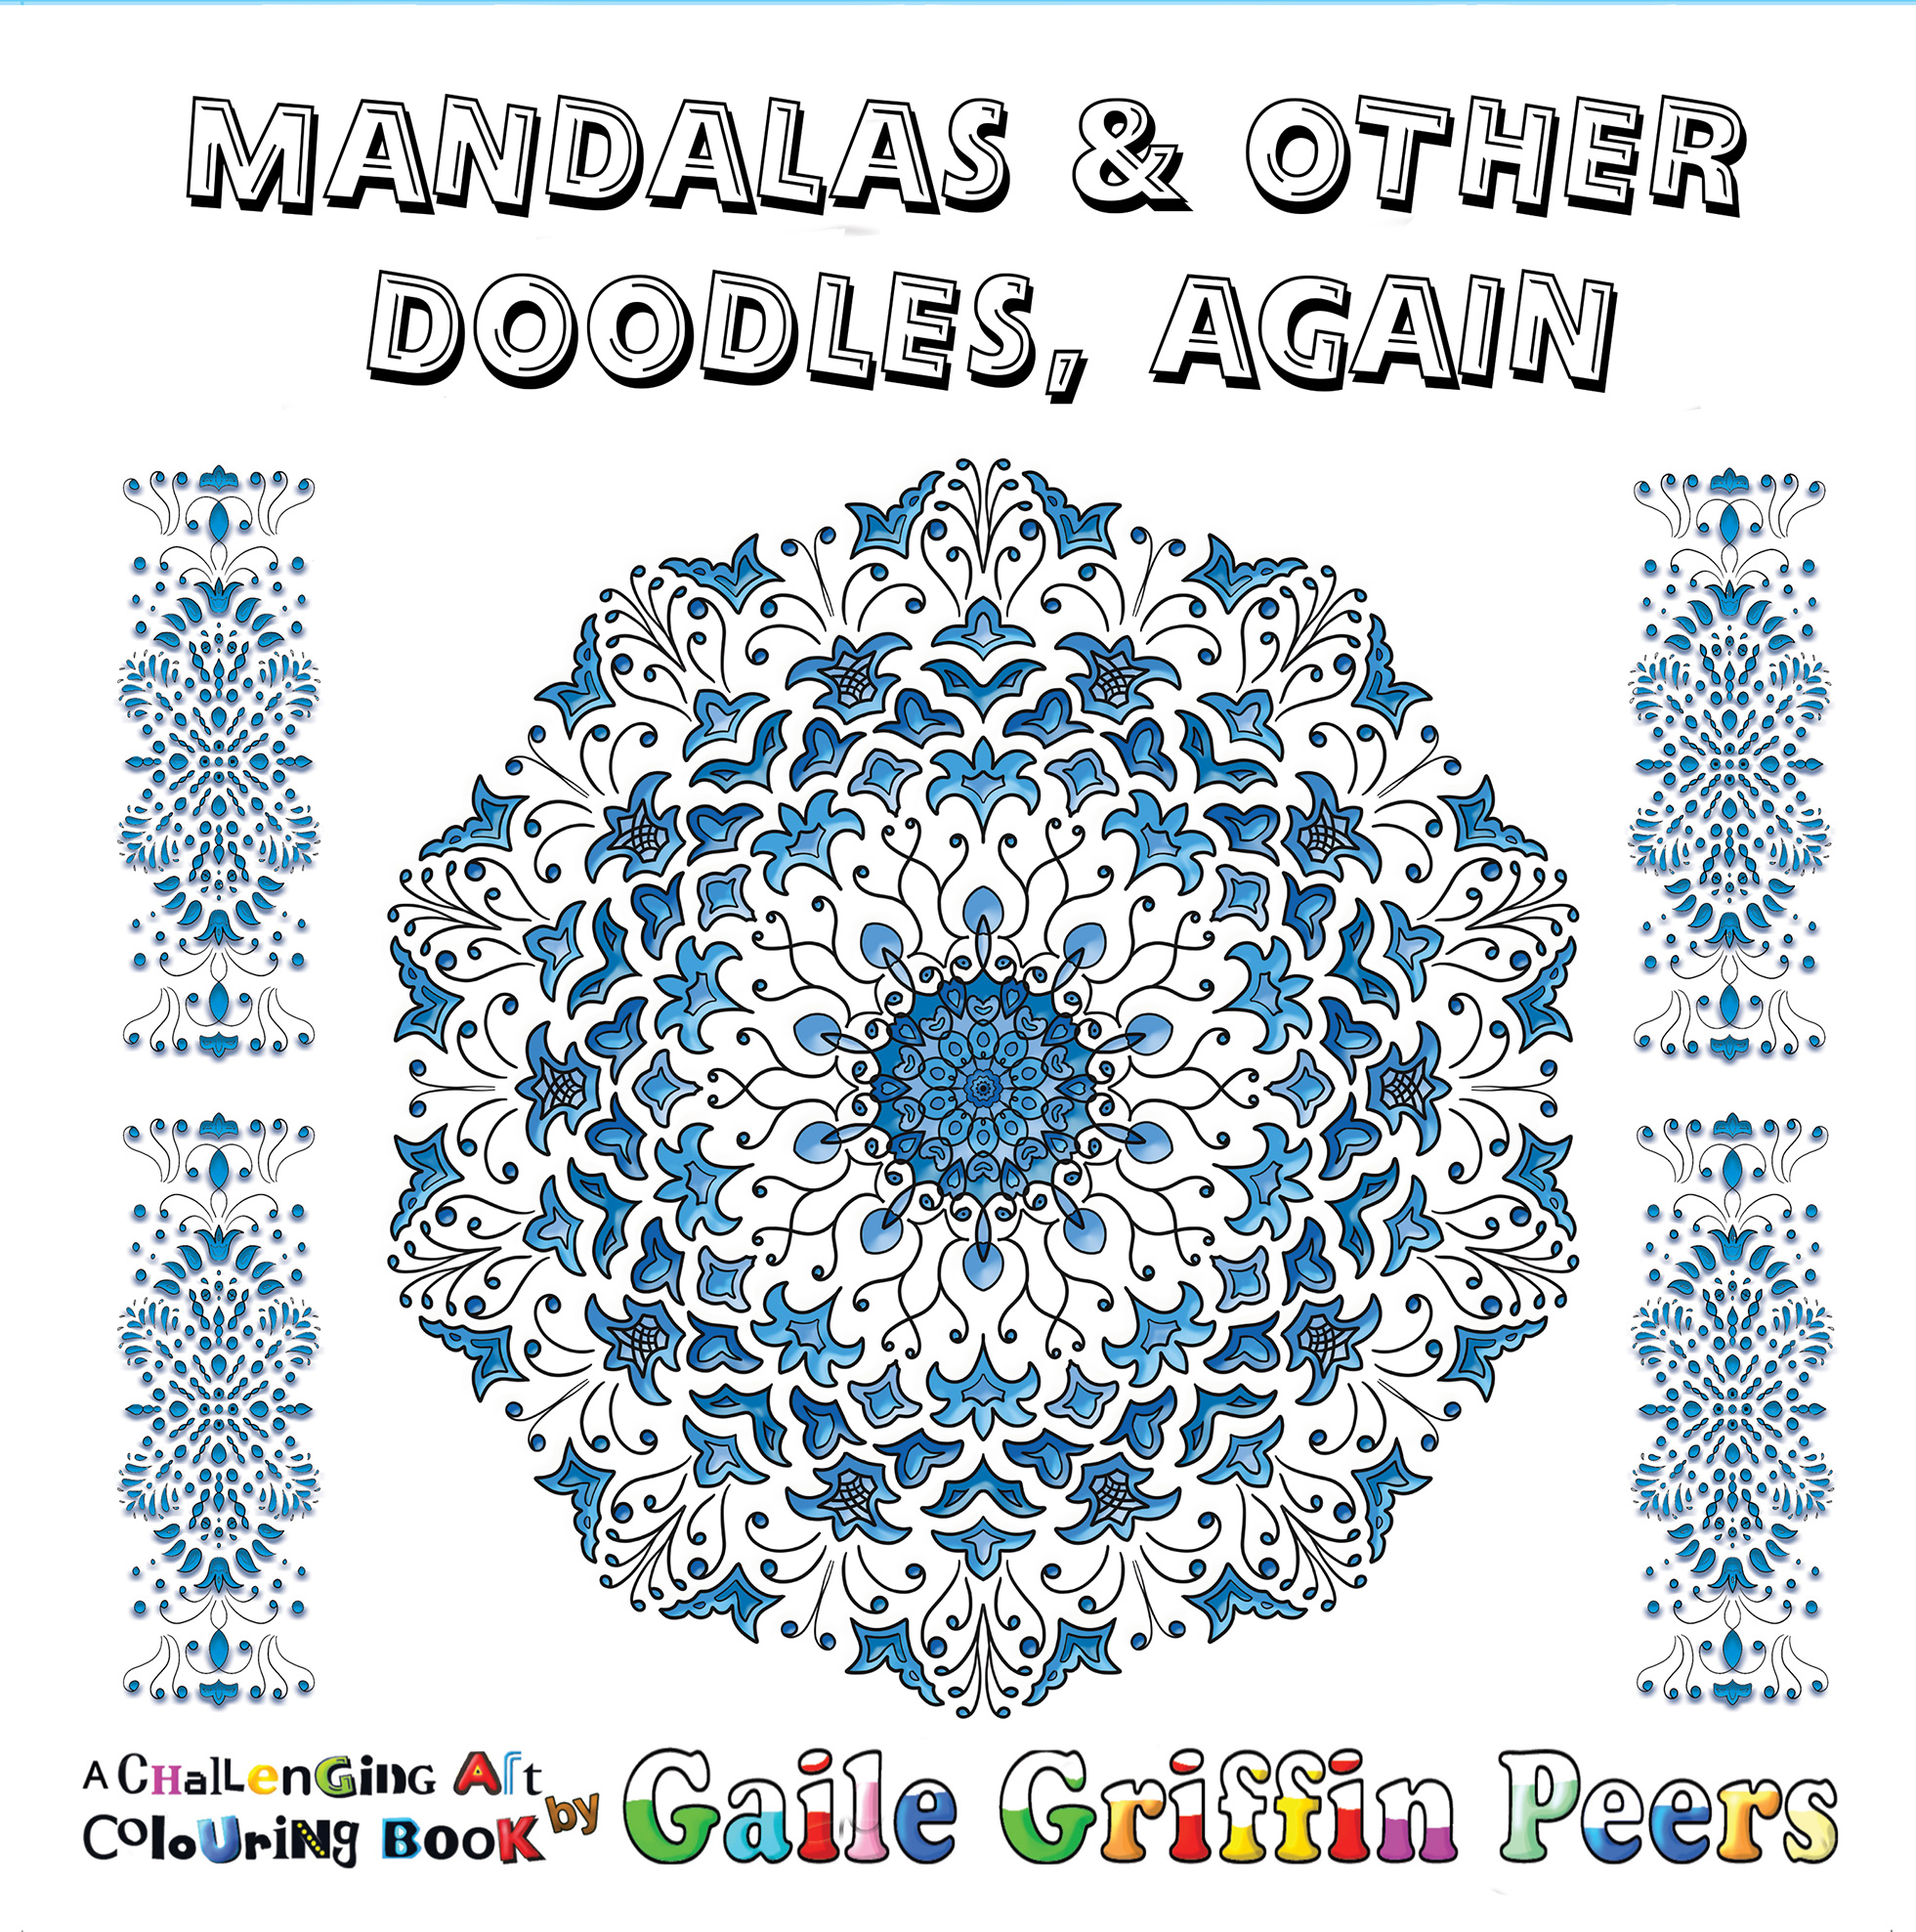 Mandalas and Other Doodles, Again is now available